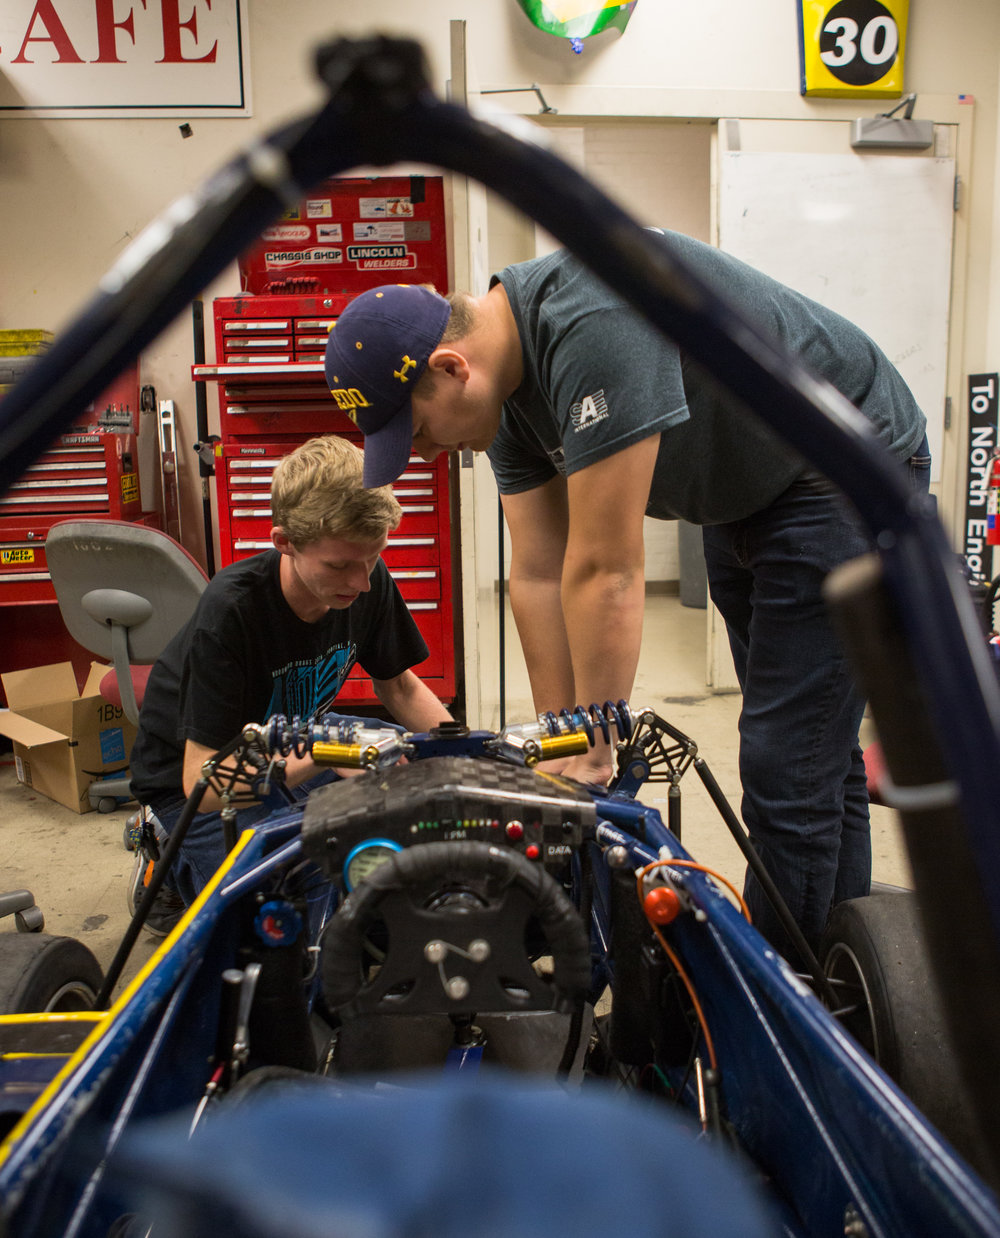 Braking subgroup lead Mike Day, left, and Austin Gant look at the pedal mount design from last year's car as they plan for the current season's car.